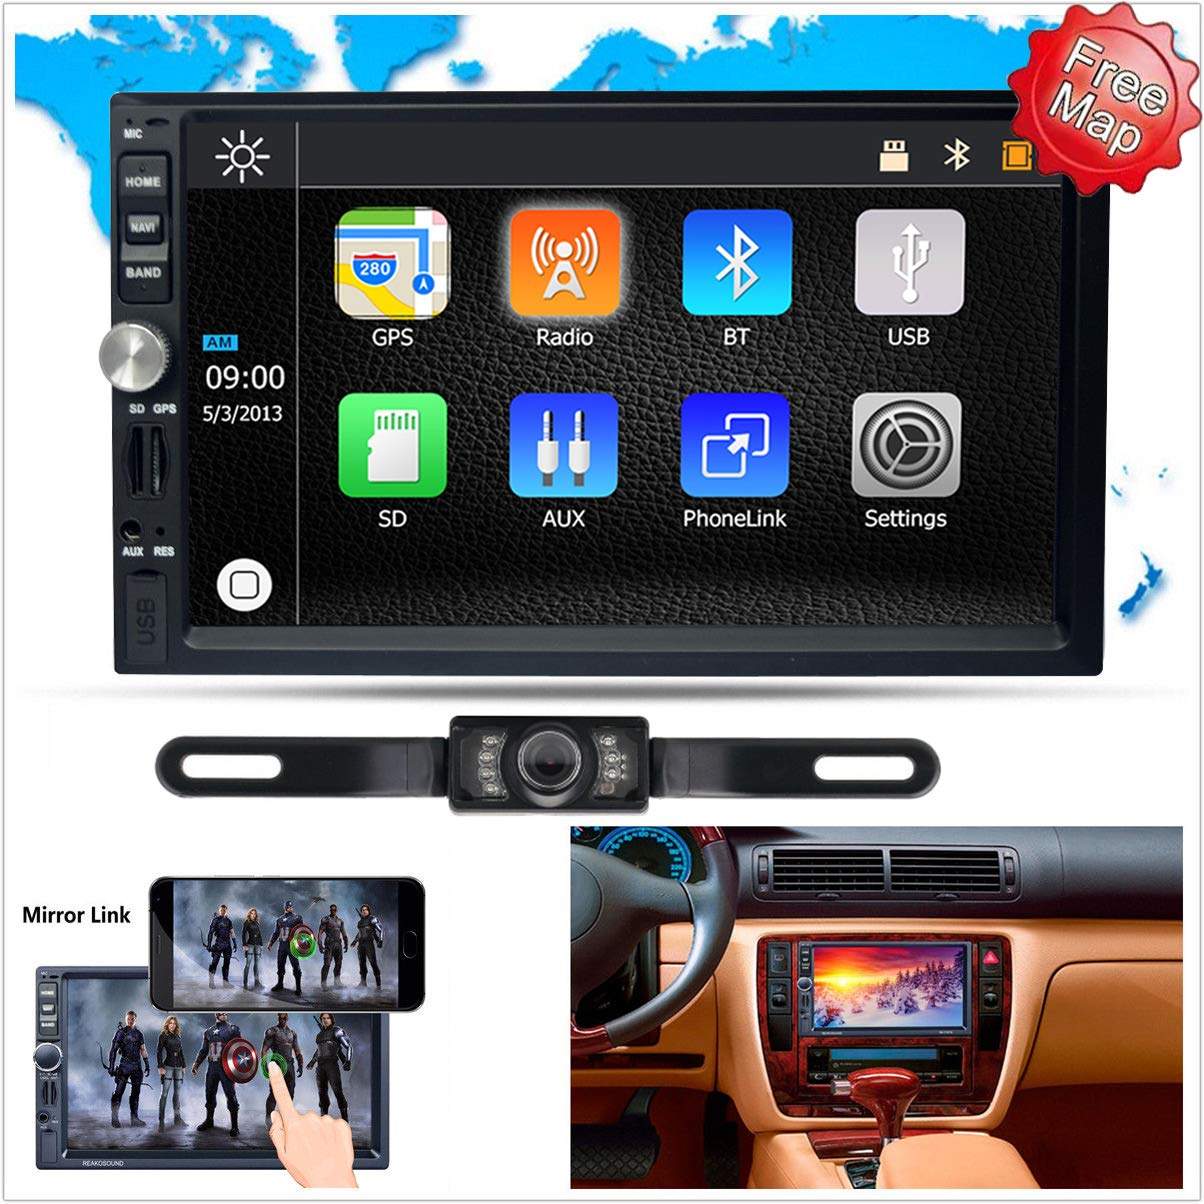 FidgetFidget Car Radio Video Stereo GPS 7'' Double 2 DIN 1080P HD Mirror Link for Android iOS